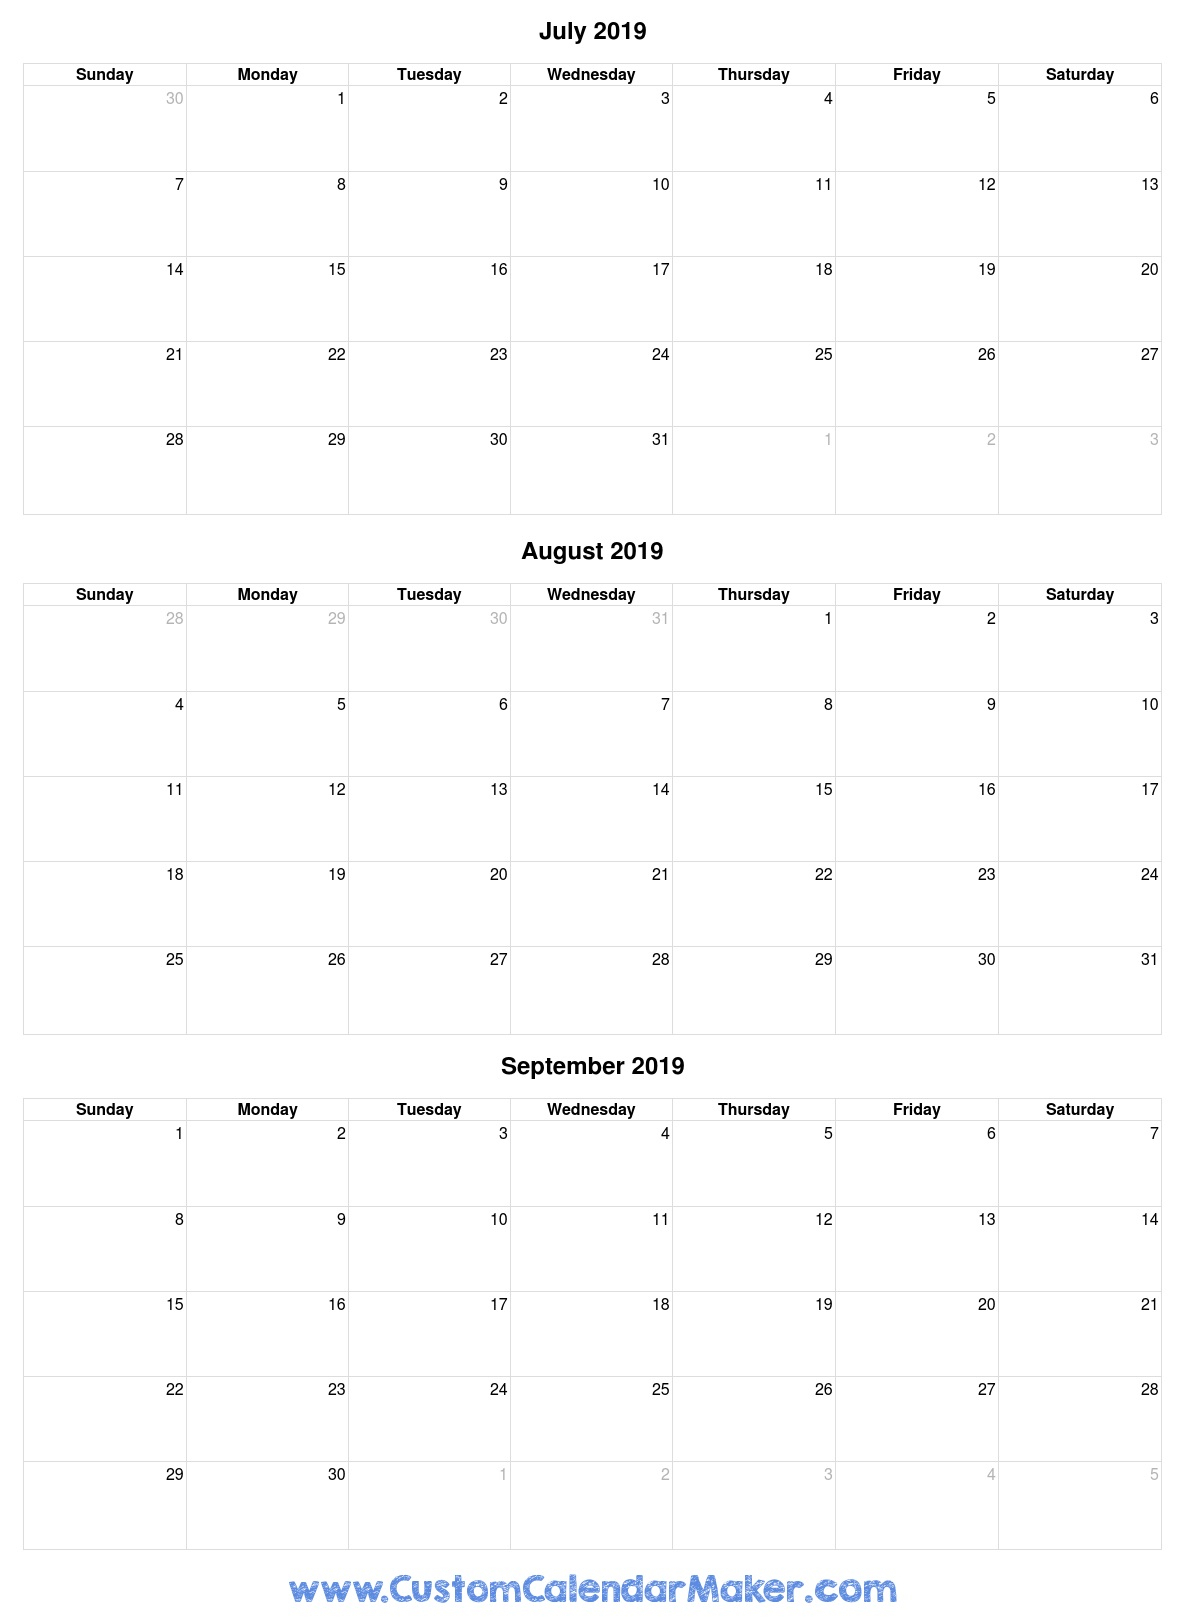 July To September 2019 Calendar - Free Printable Template